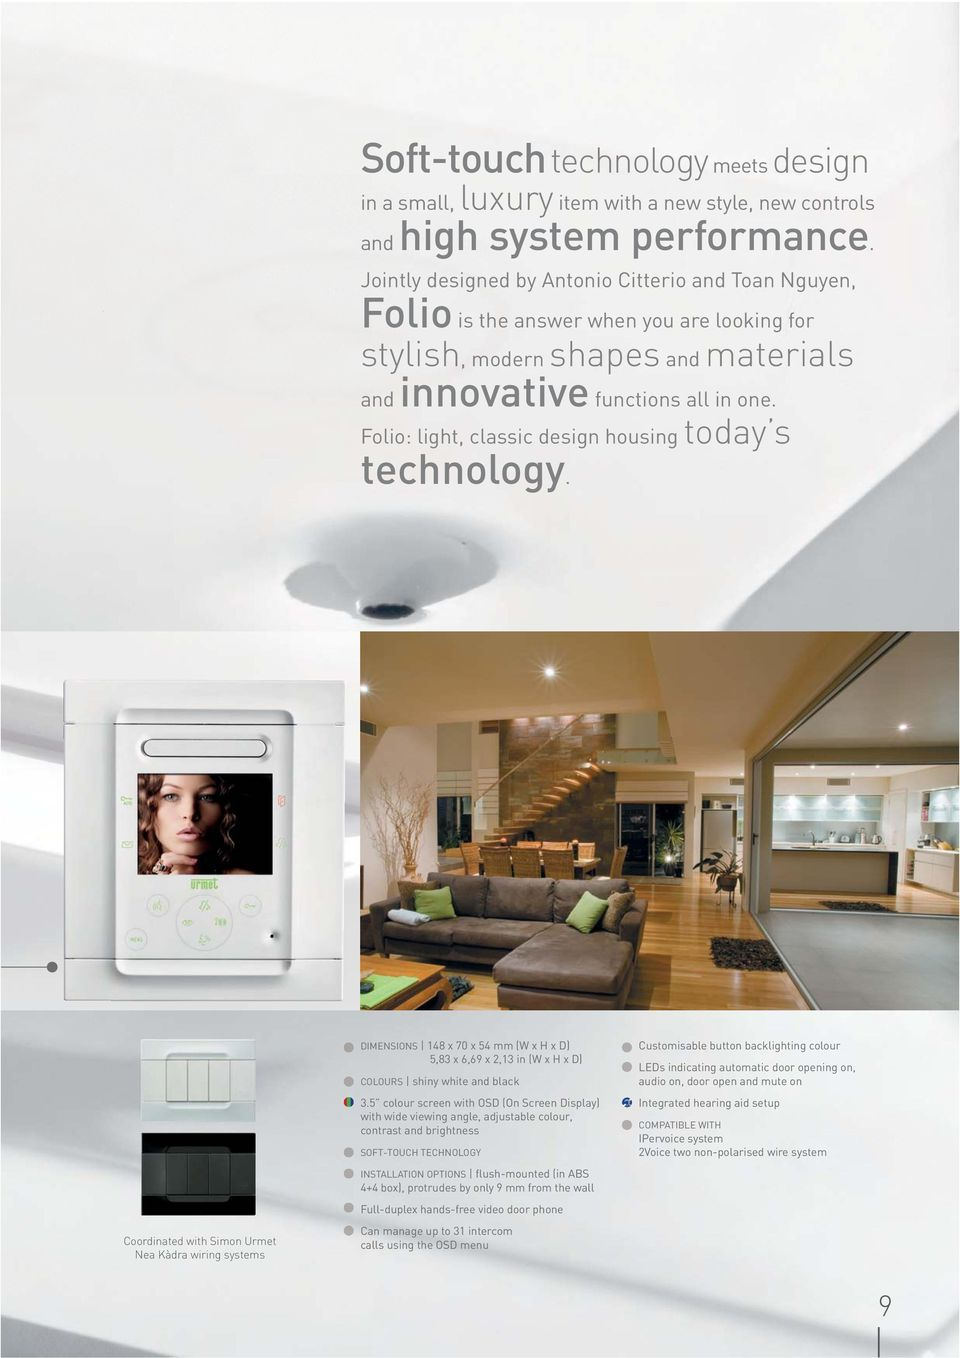 Folio: light, classic design housing today s technology.